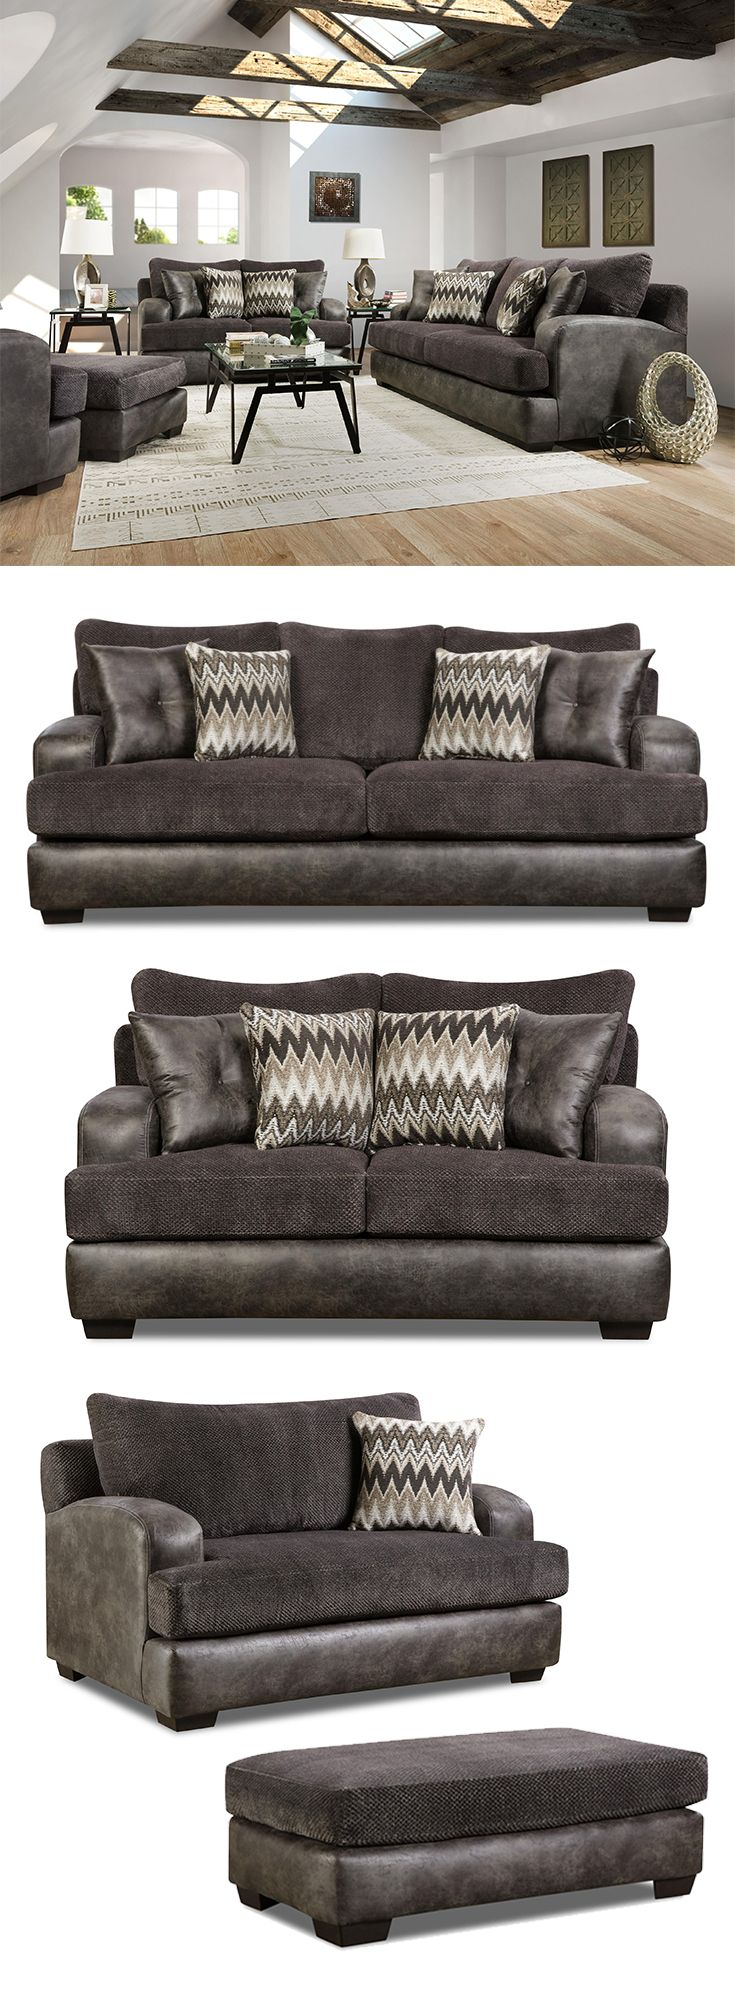 If You Re Looking For A Casual Contemporary Design With A